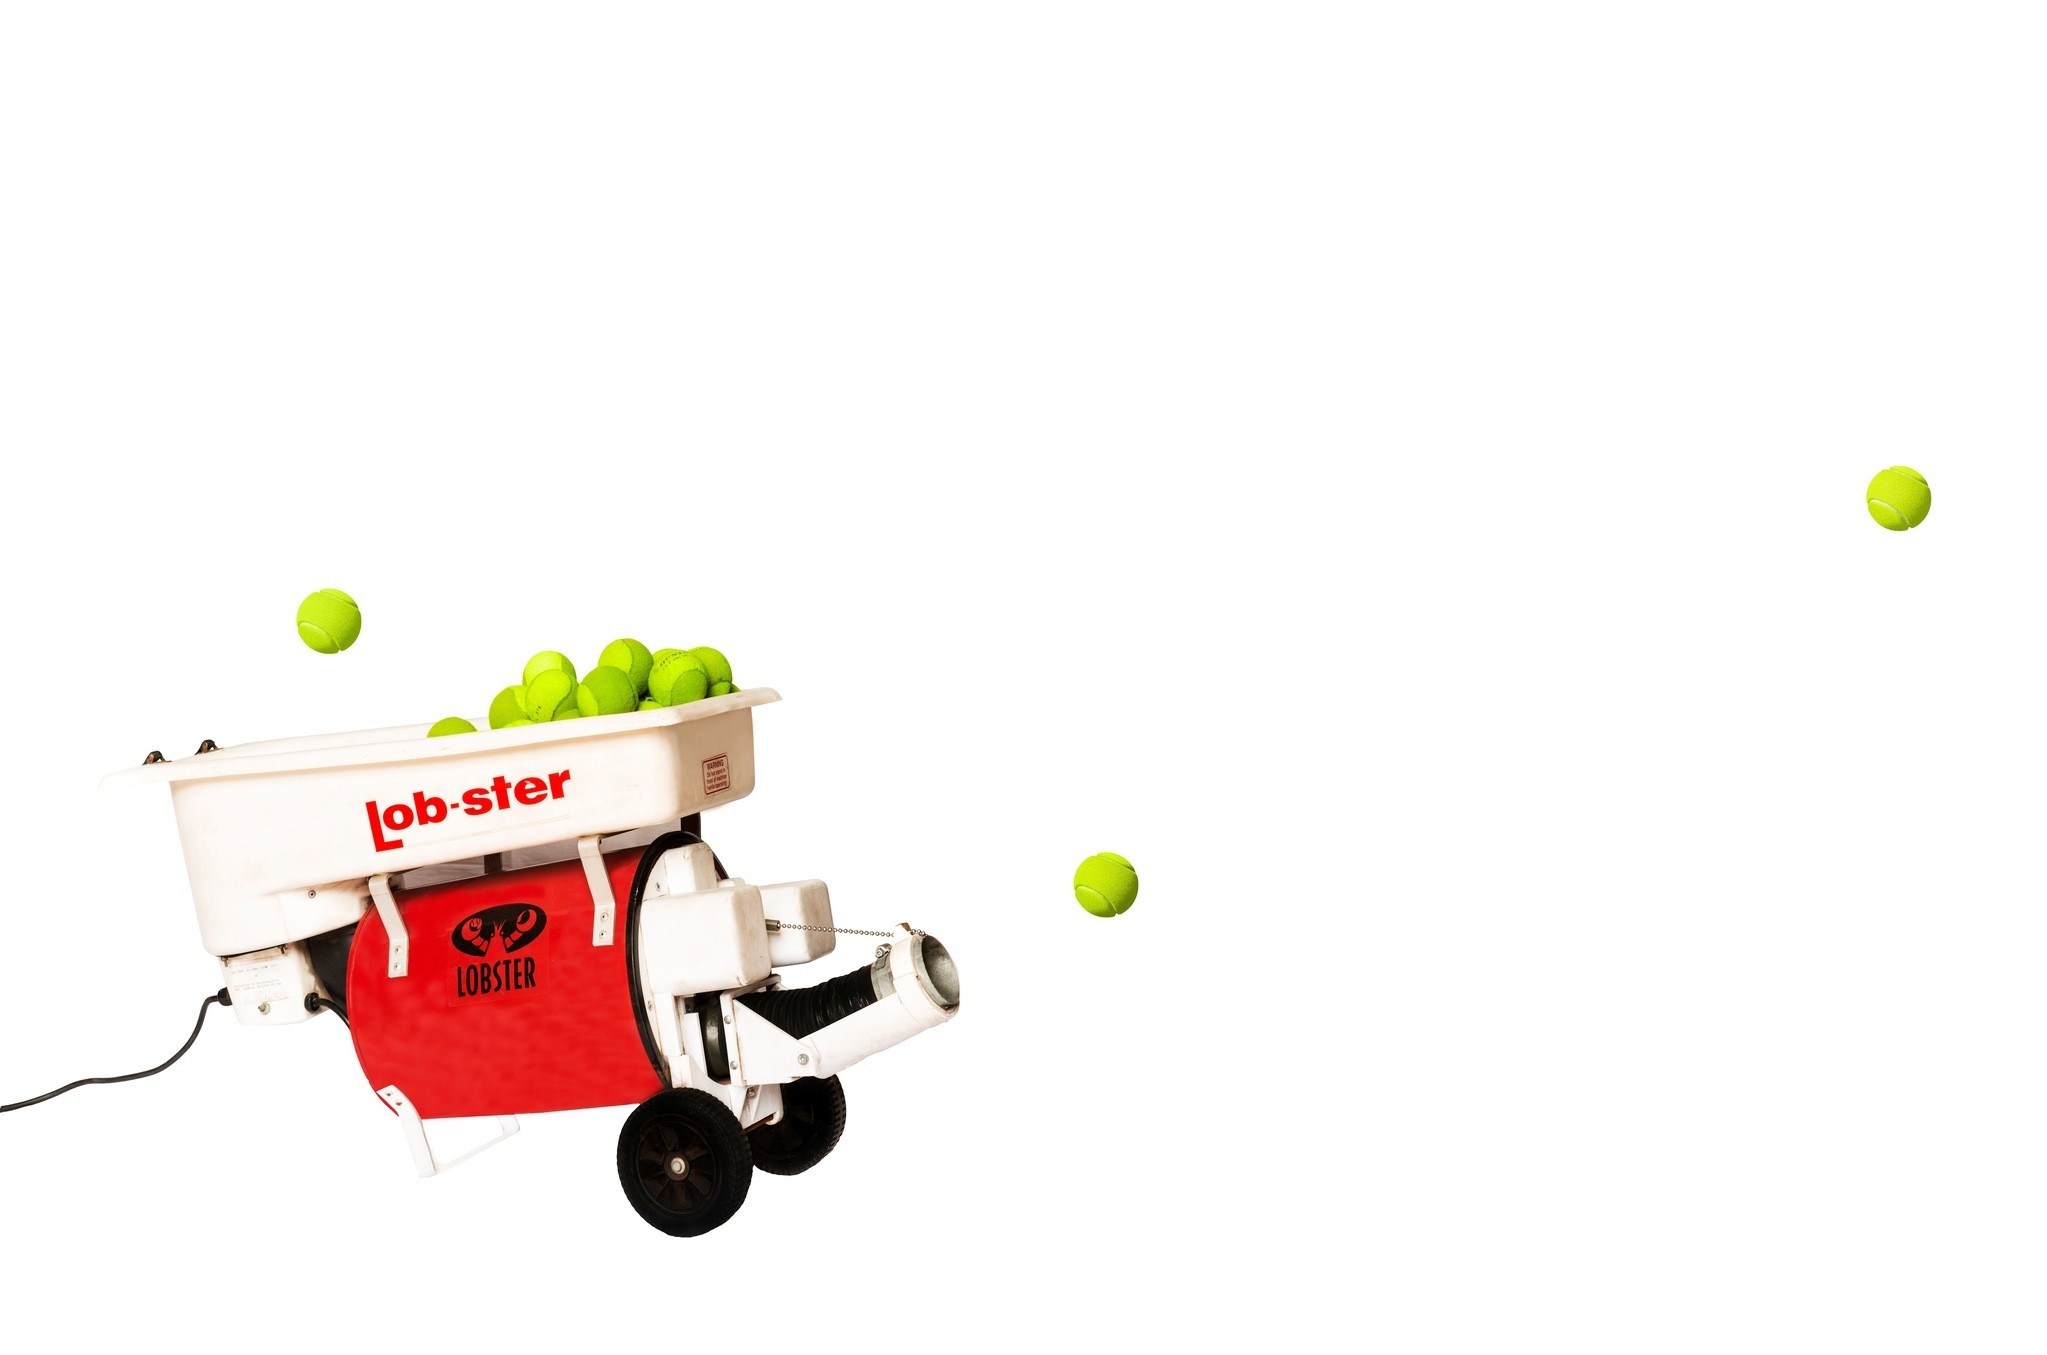 The tennis ball machine in which the ball returns again after shooting and other works aim to criticize the hierarchical system ironically.